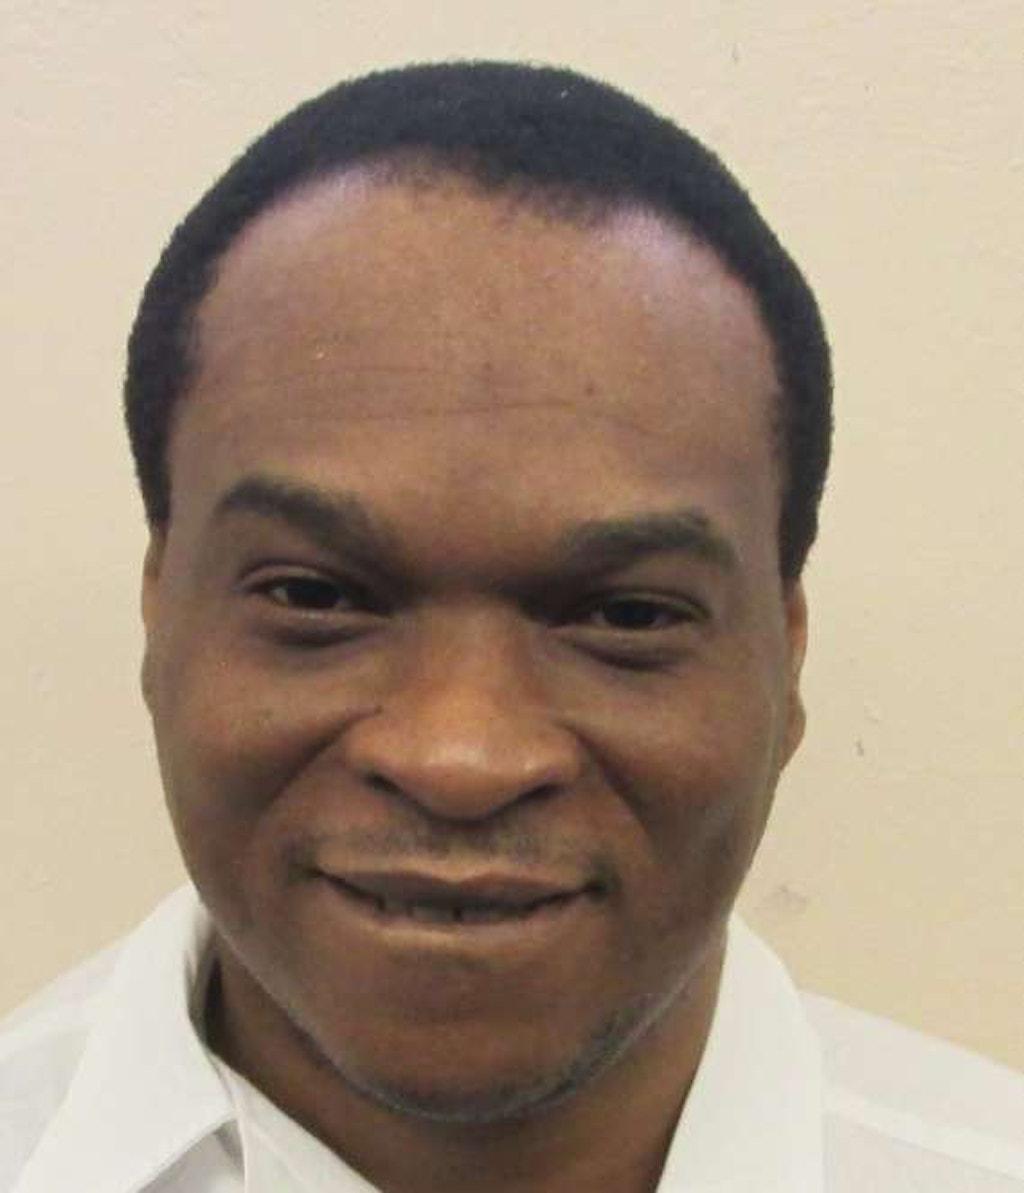 Federal Court Grants Lethal-Injection Stay to Alabama Prisoner With Claims of Attorney Abandonment, Flawed Forensics